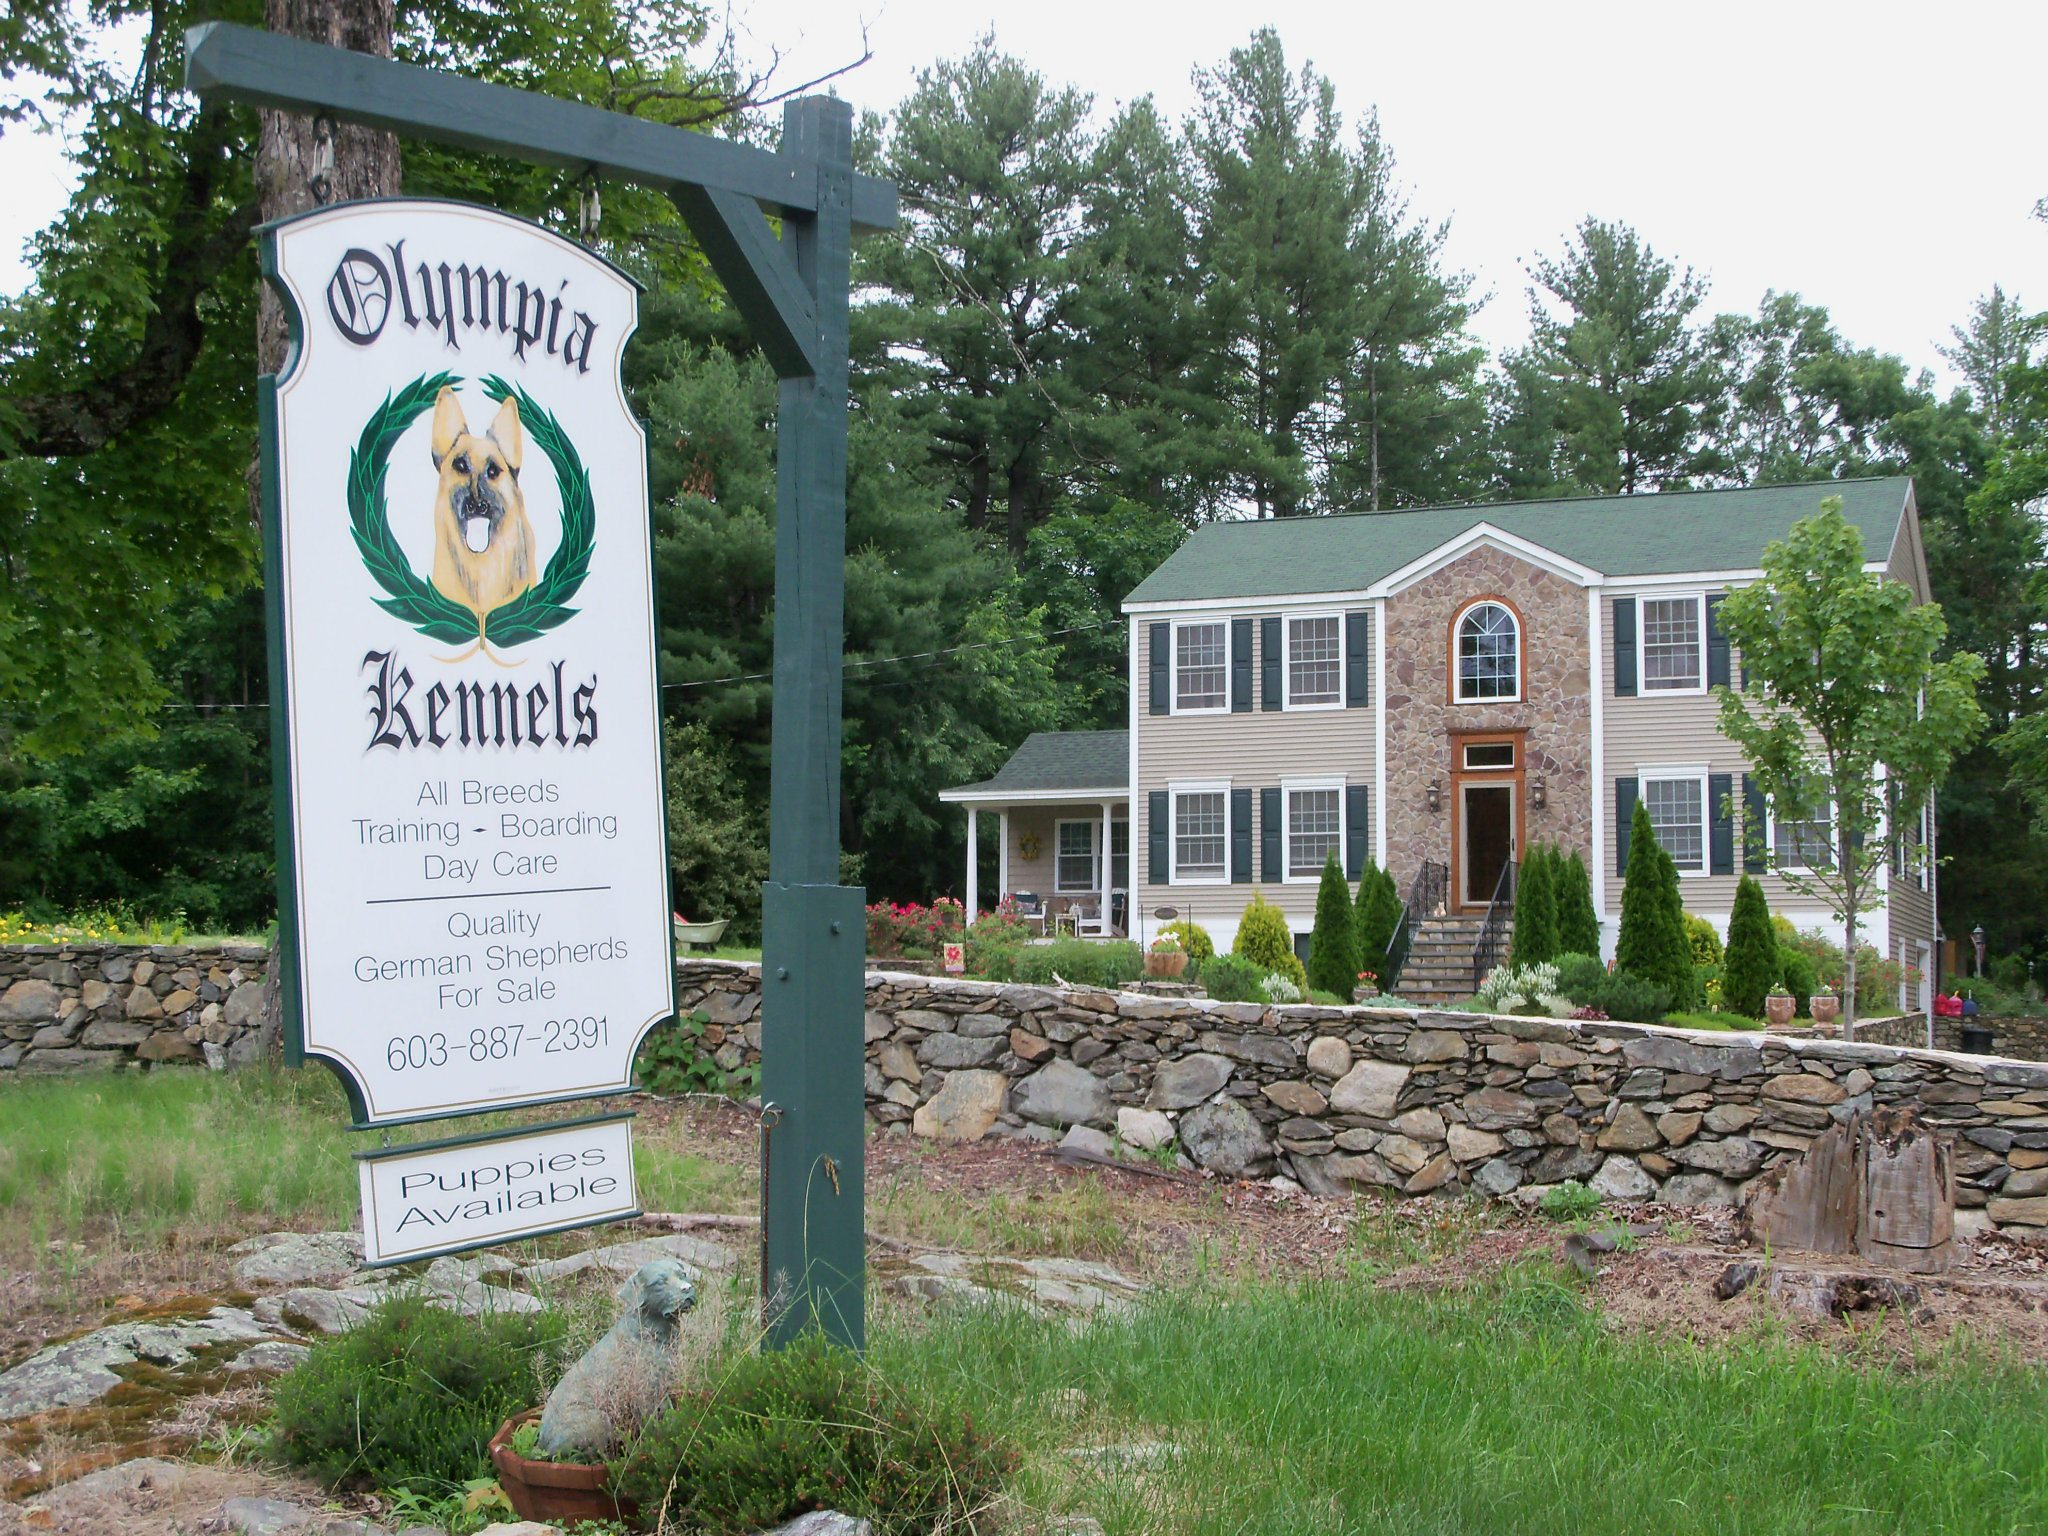 A virtual tour of Olympia Kennels